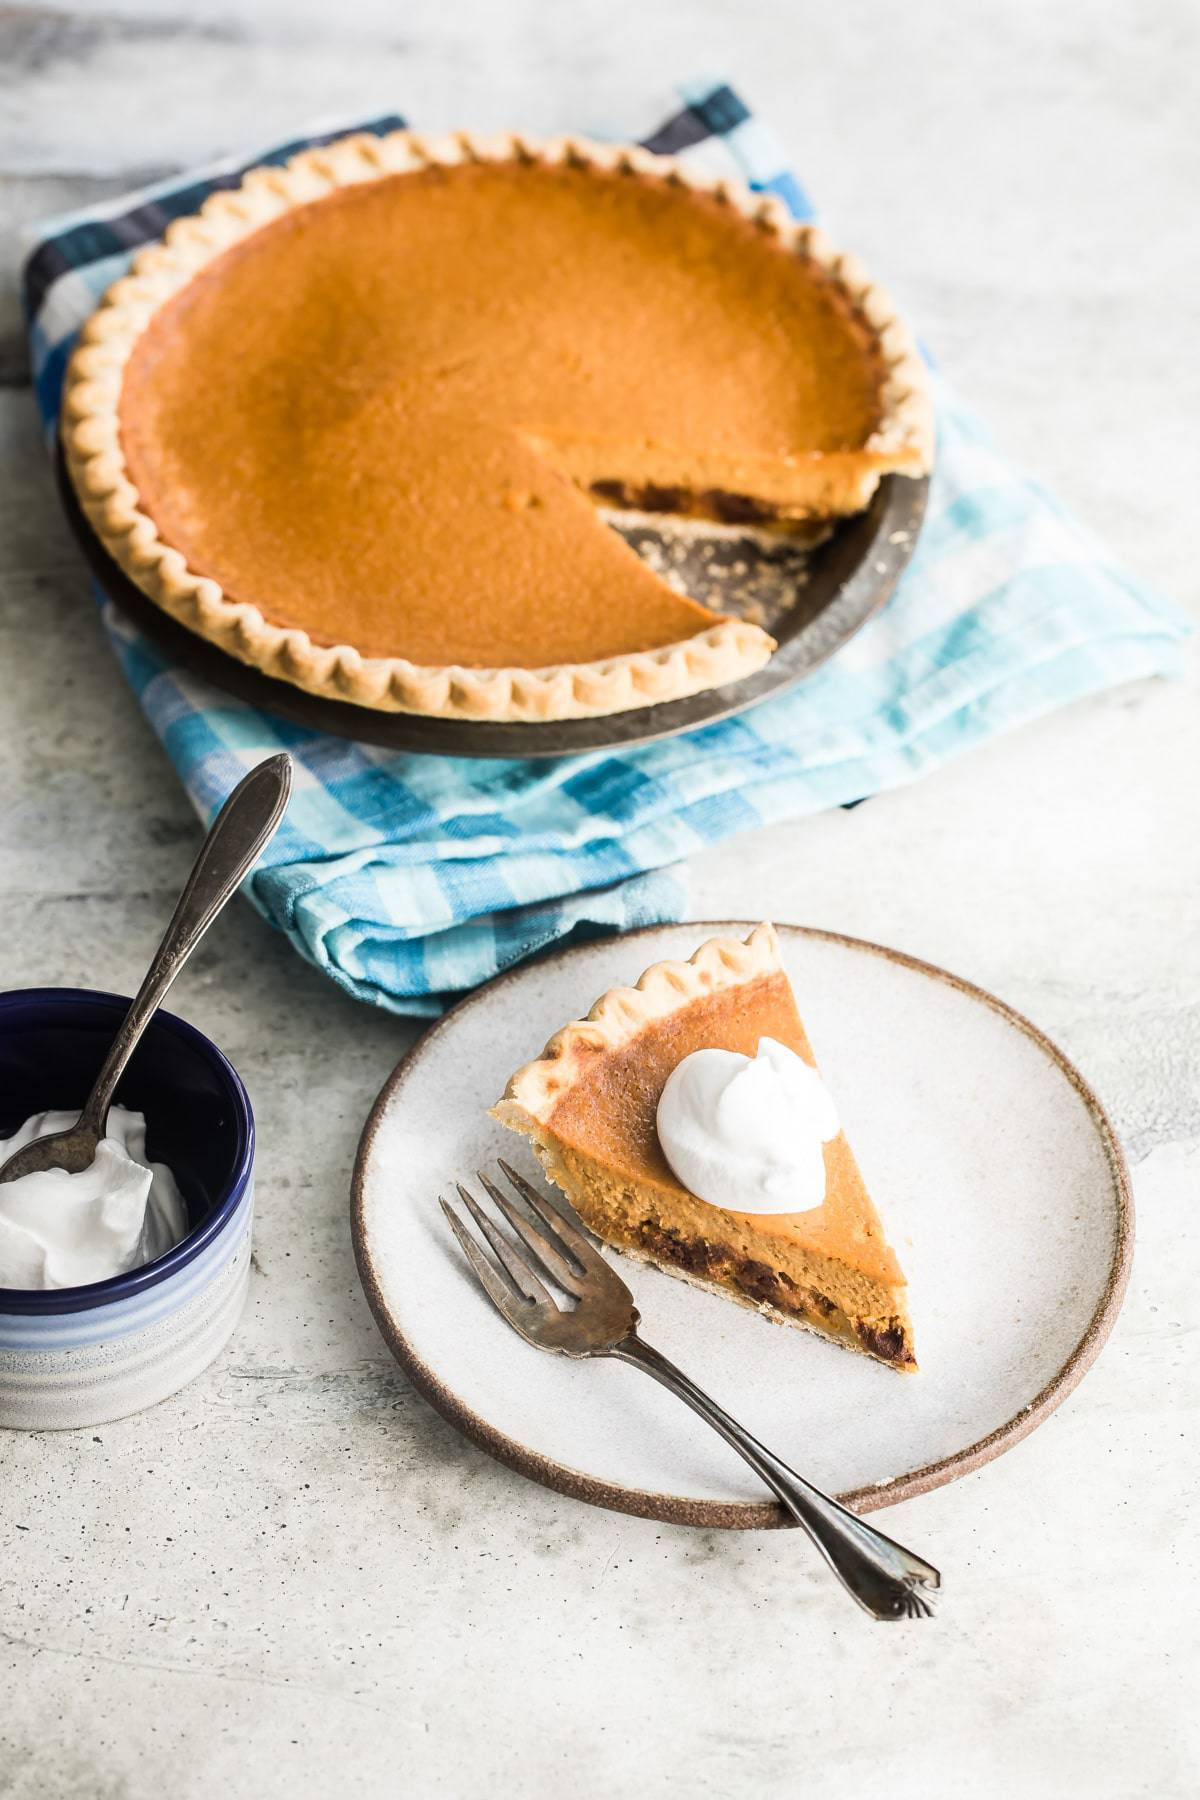 a slice of chocolate pumpkin pie on a plate with a dollop of cream on top